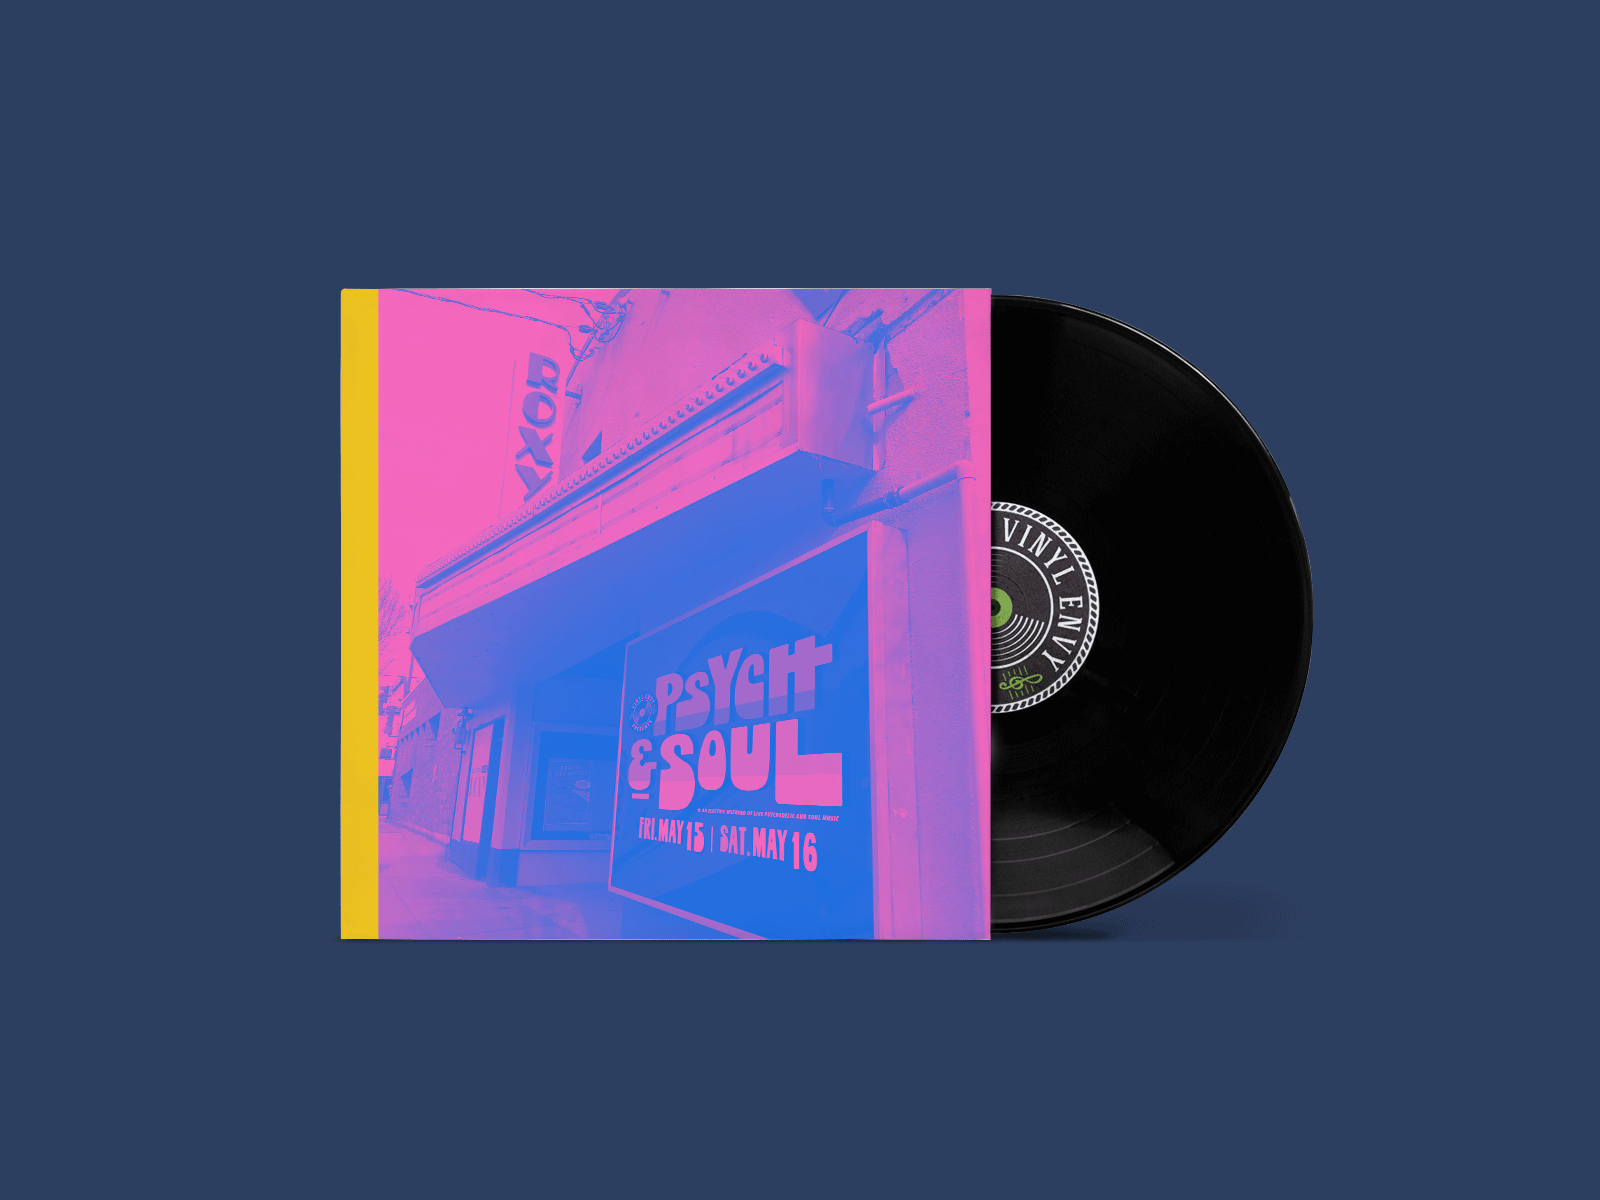 vinyl record design for psych and soul music festival